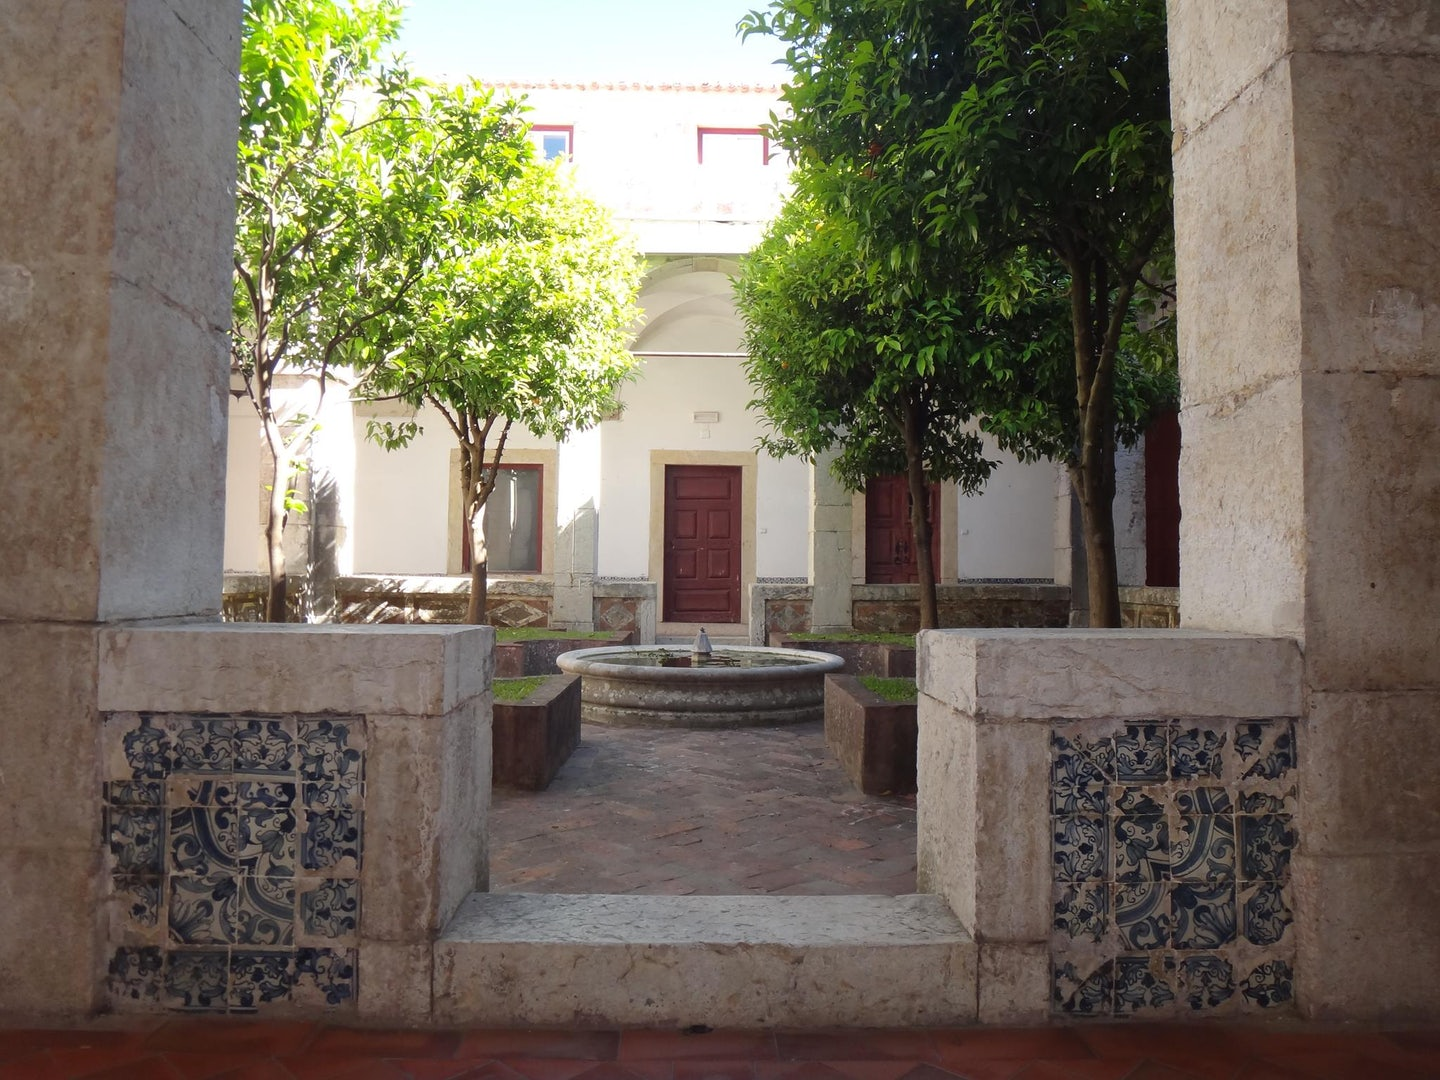 fountain at a courtyard of the Convento dos Cardaes